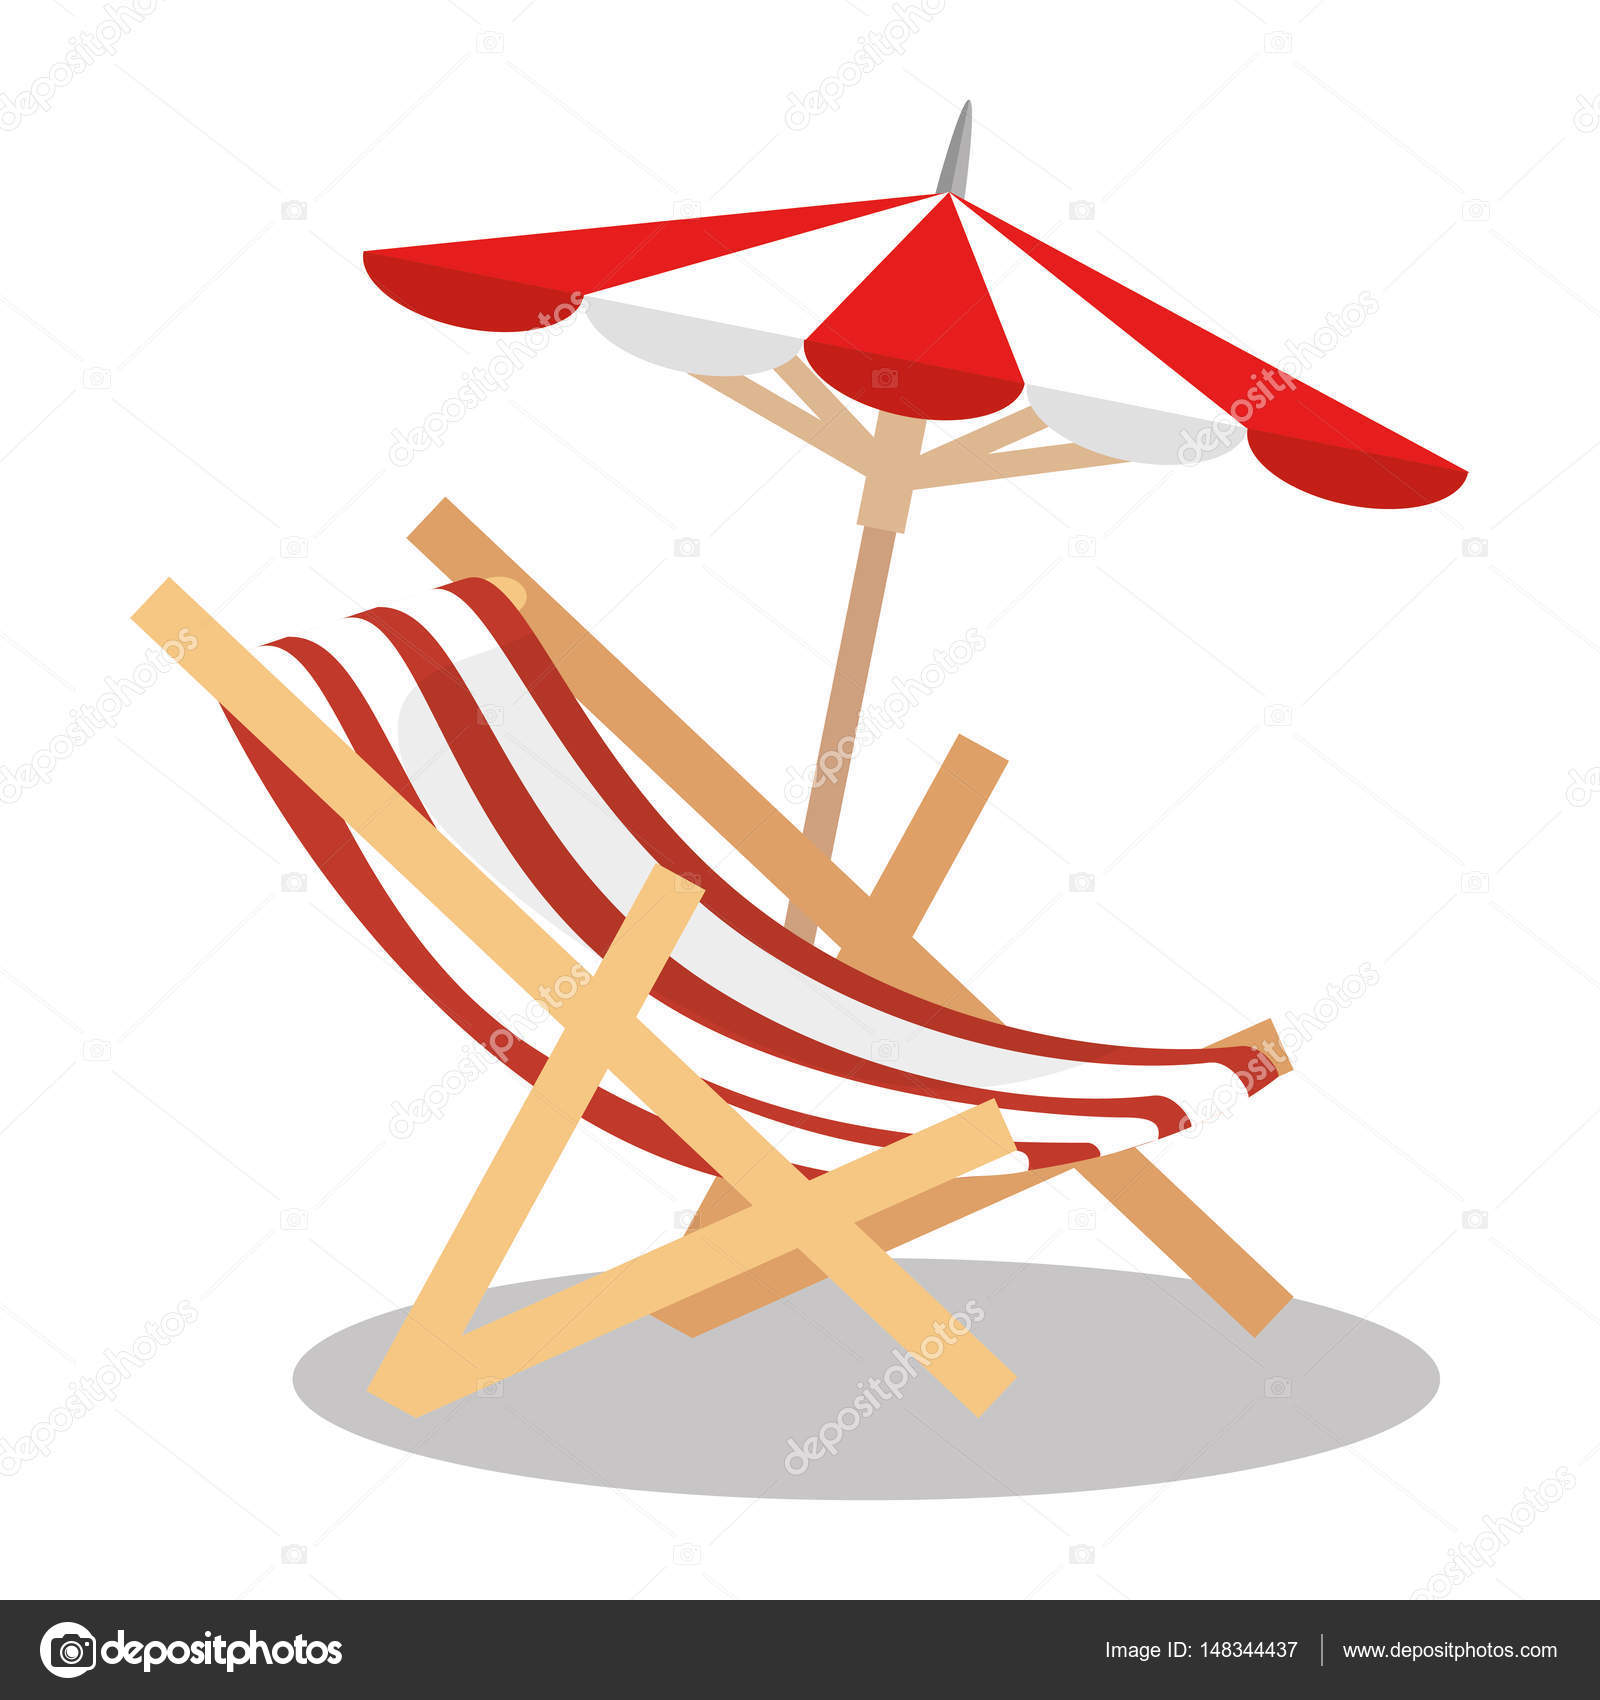 Clipart Liegestuhl Clipart Liegestuhl Person On Sunbed And Umbrella Icon